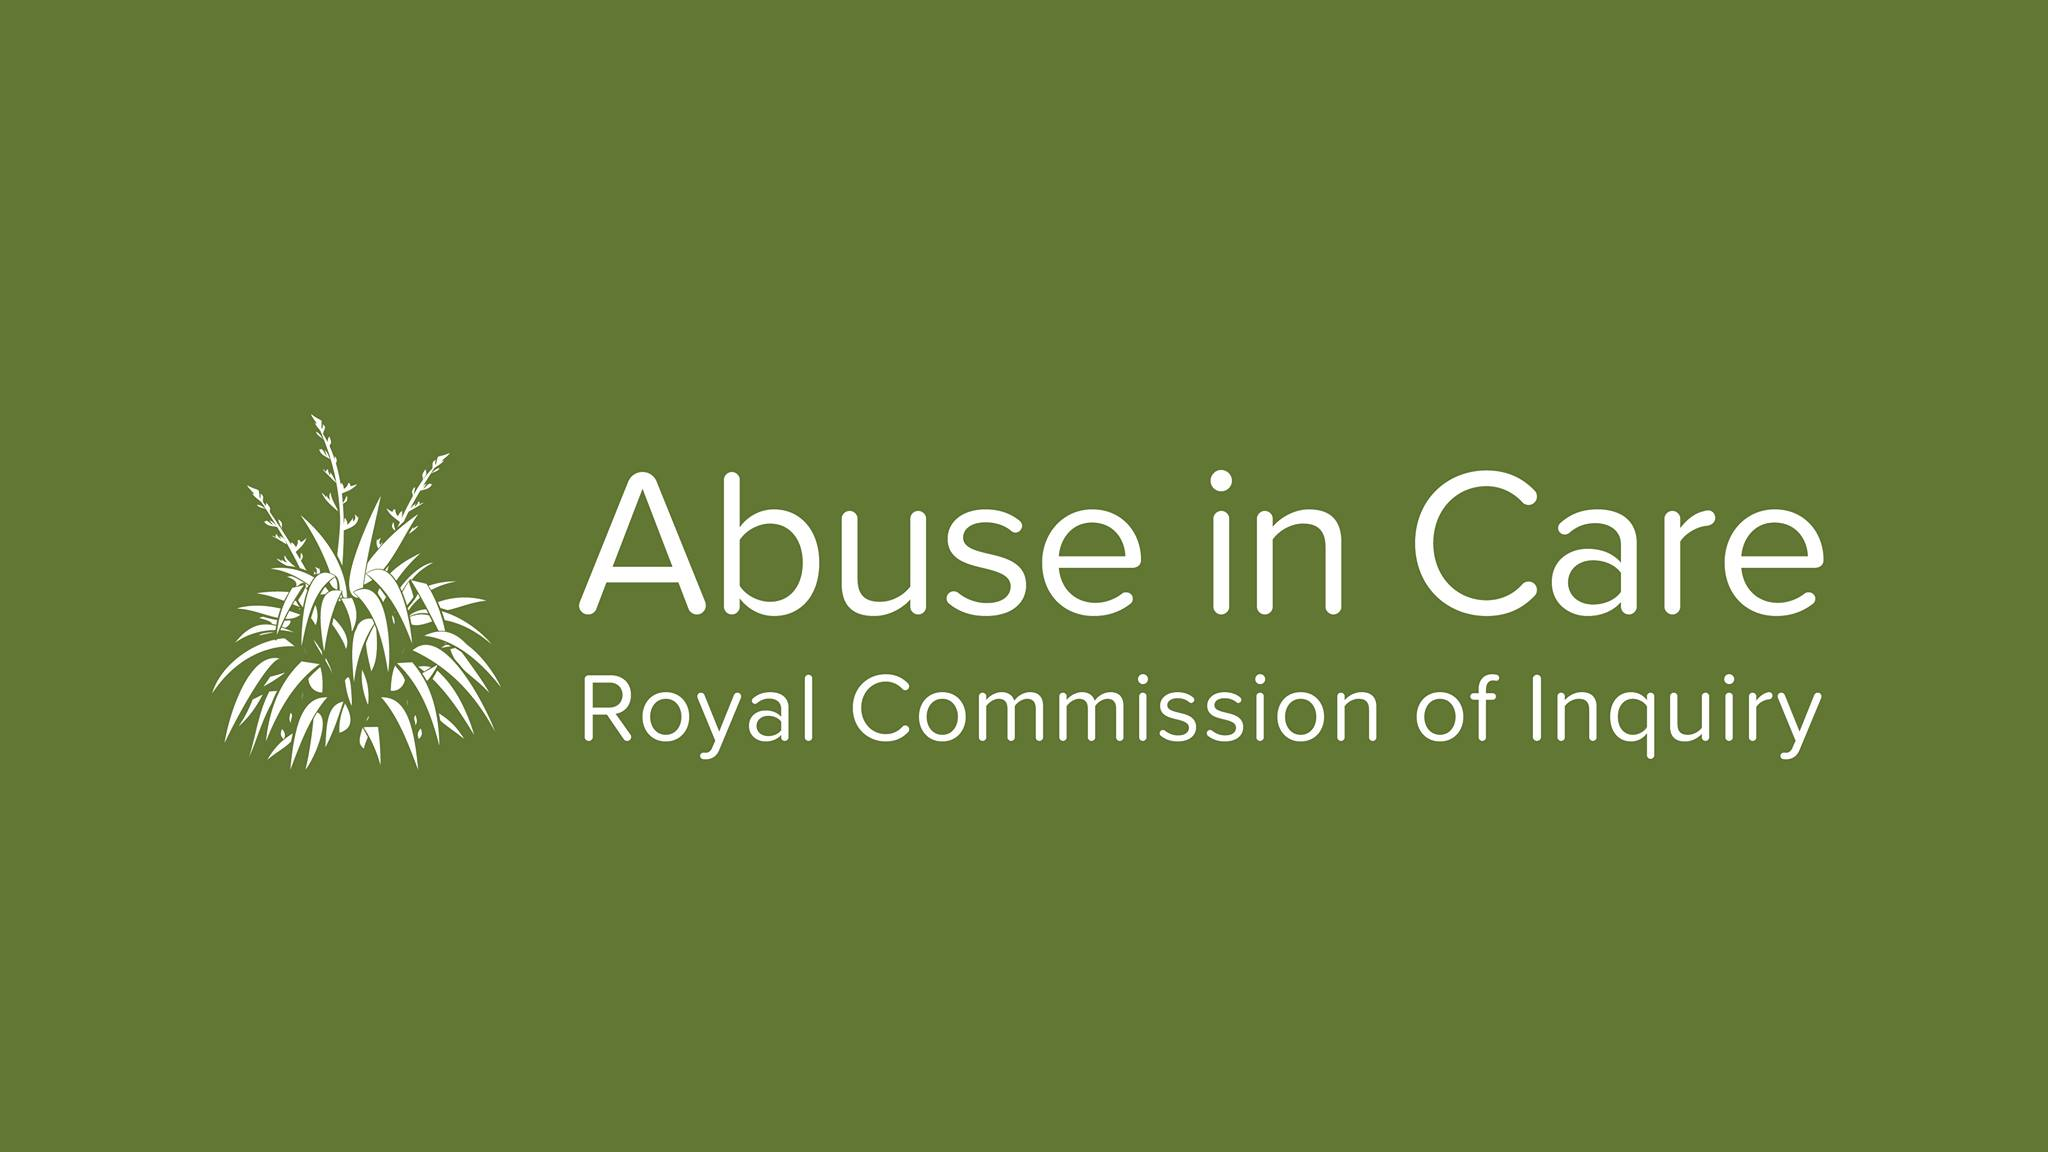 Royal Commission logo